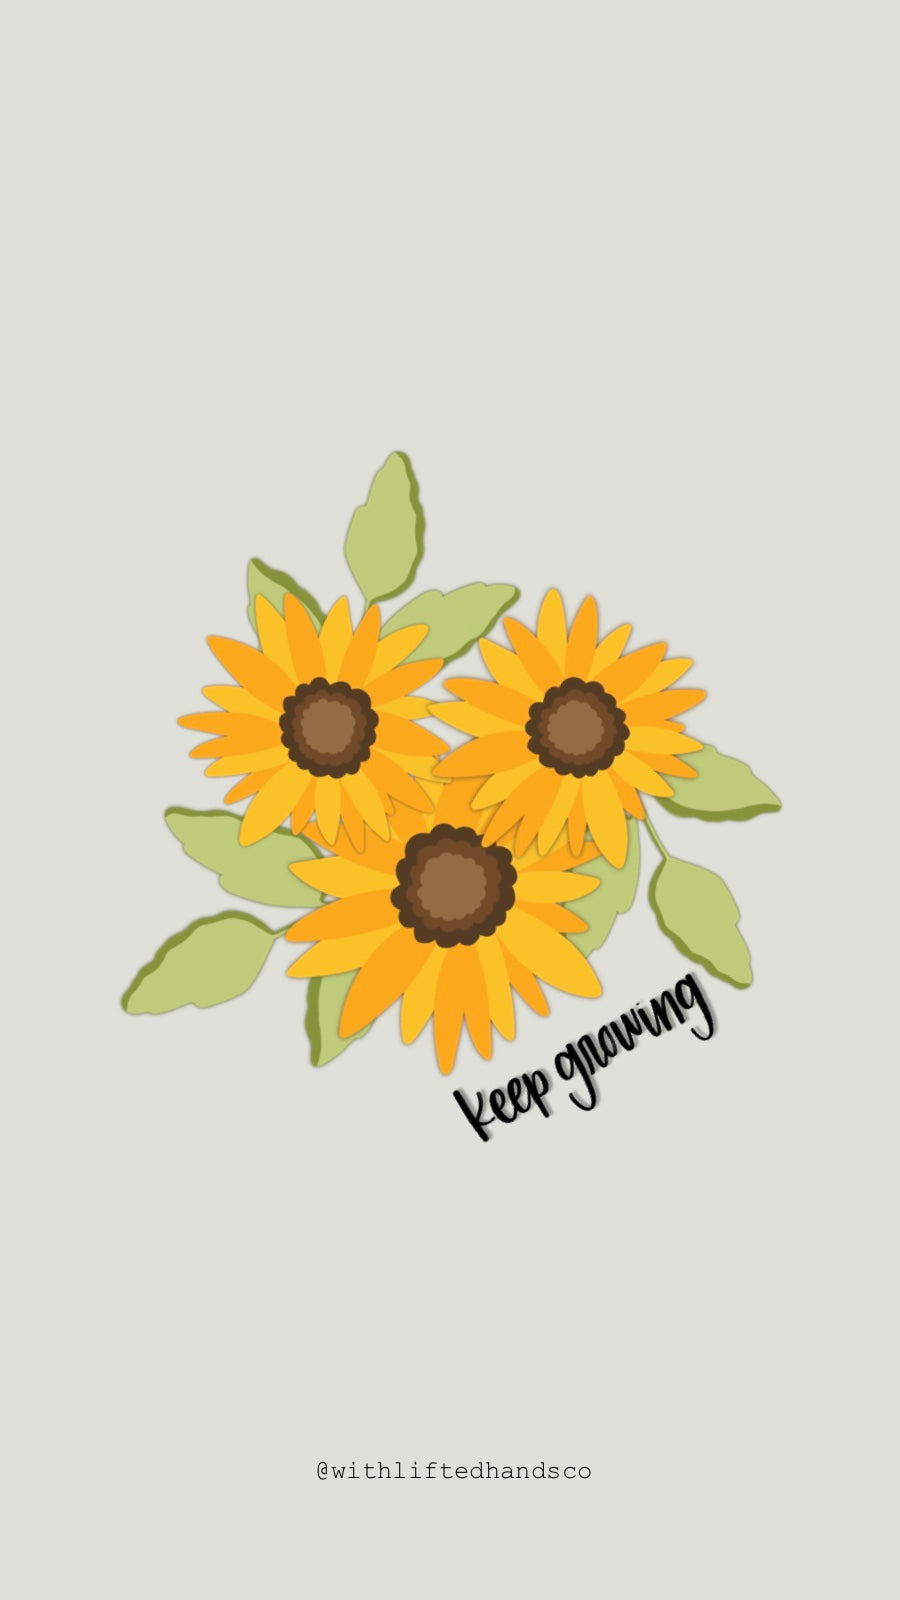 Sunflower phone wallpapers by with lifted hands co